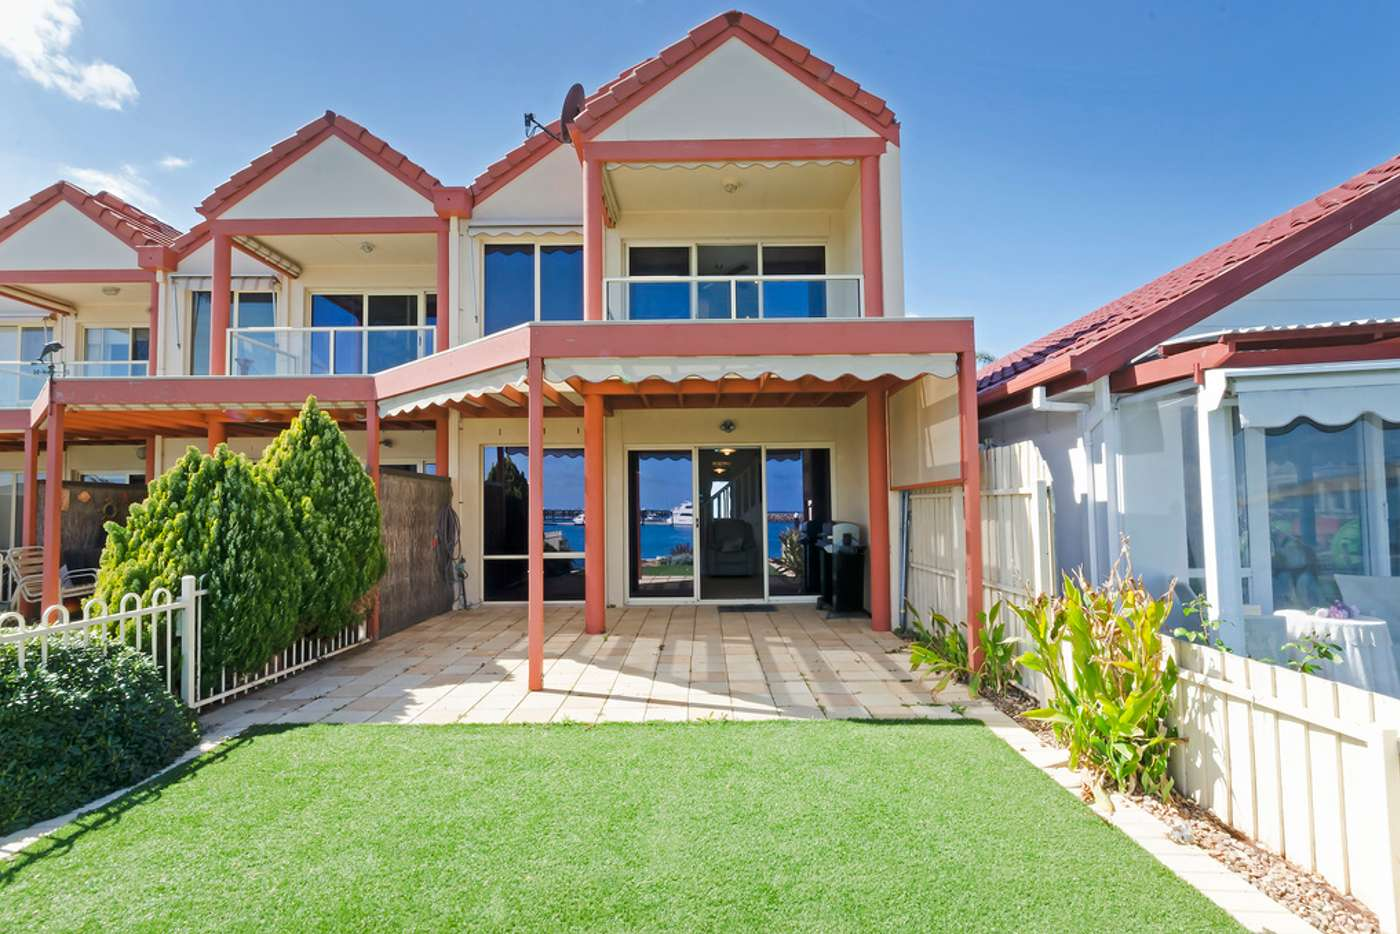 Main view of Homely house listing, 1/2 Cooroyba Court, North Haven SA 5018